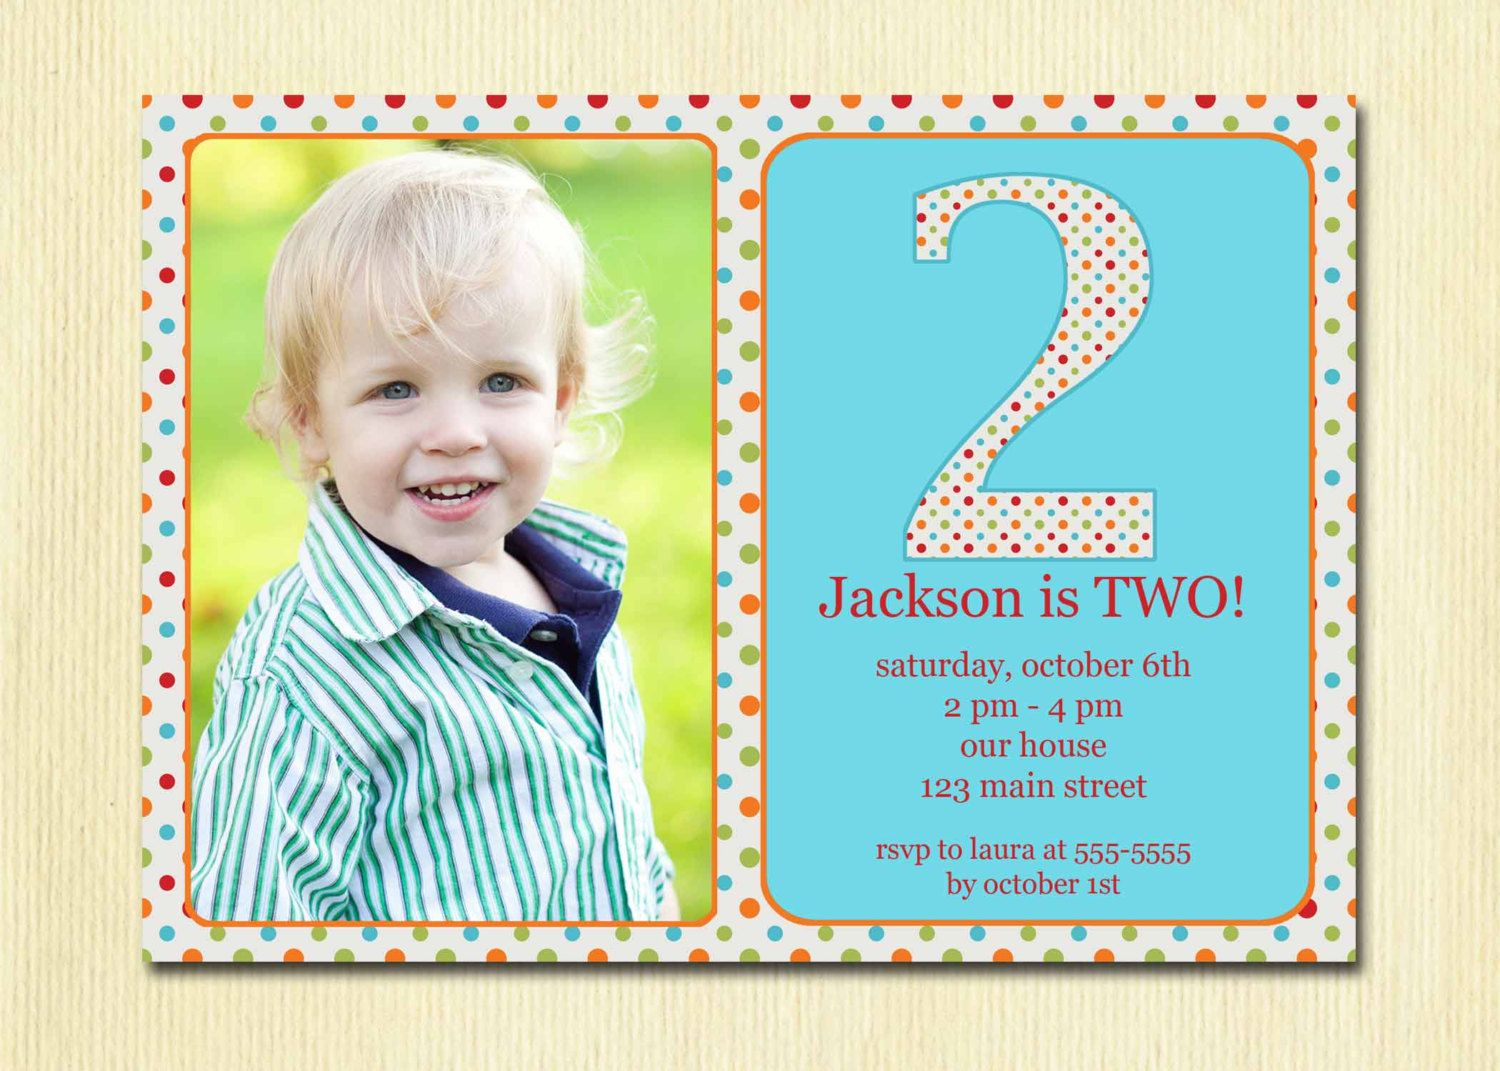 2 Year Old Birthday Party Invitation Wording